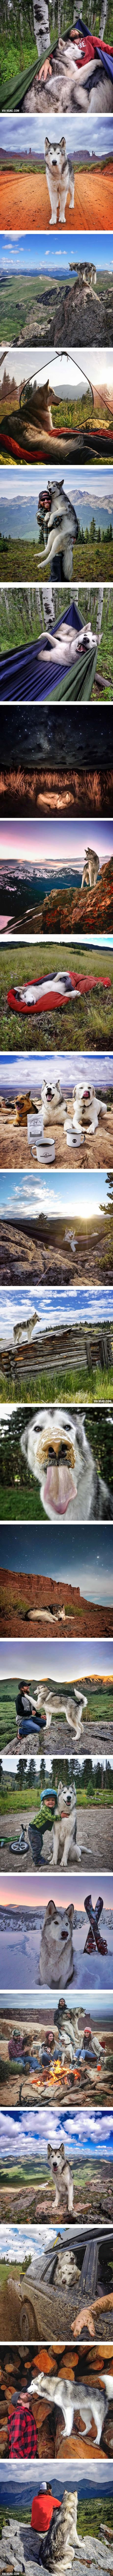 Meet Loki, The Wolfdog That Goes On An Epic Adventure With His Human